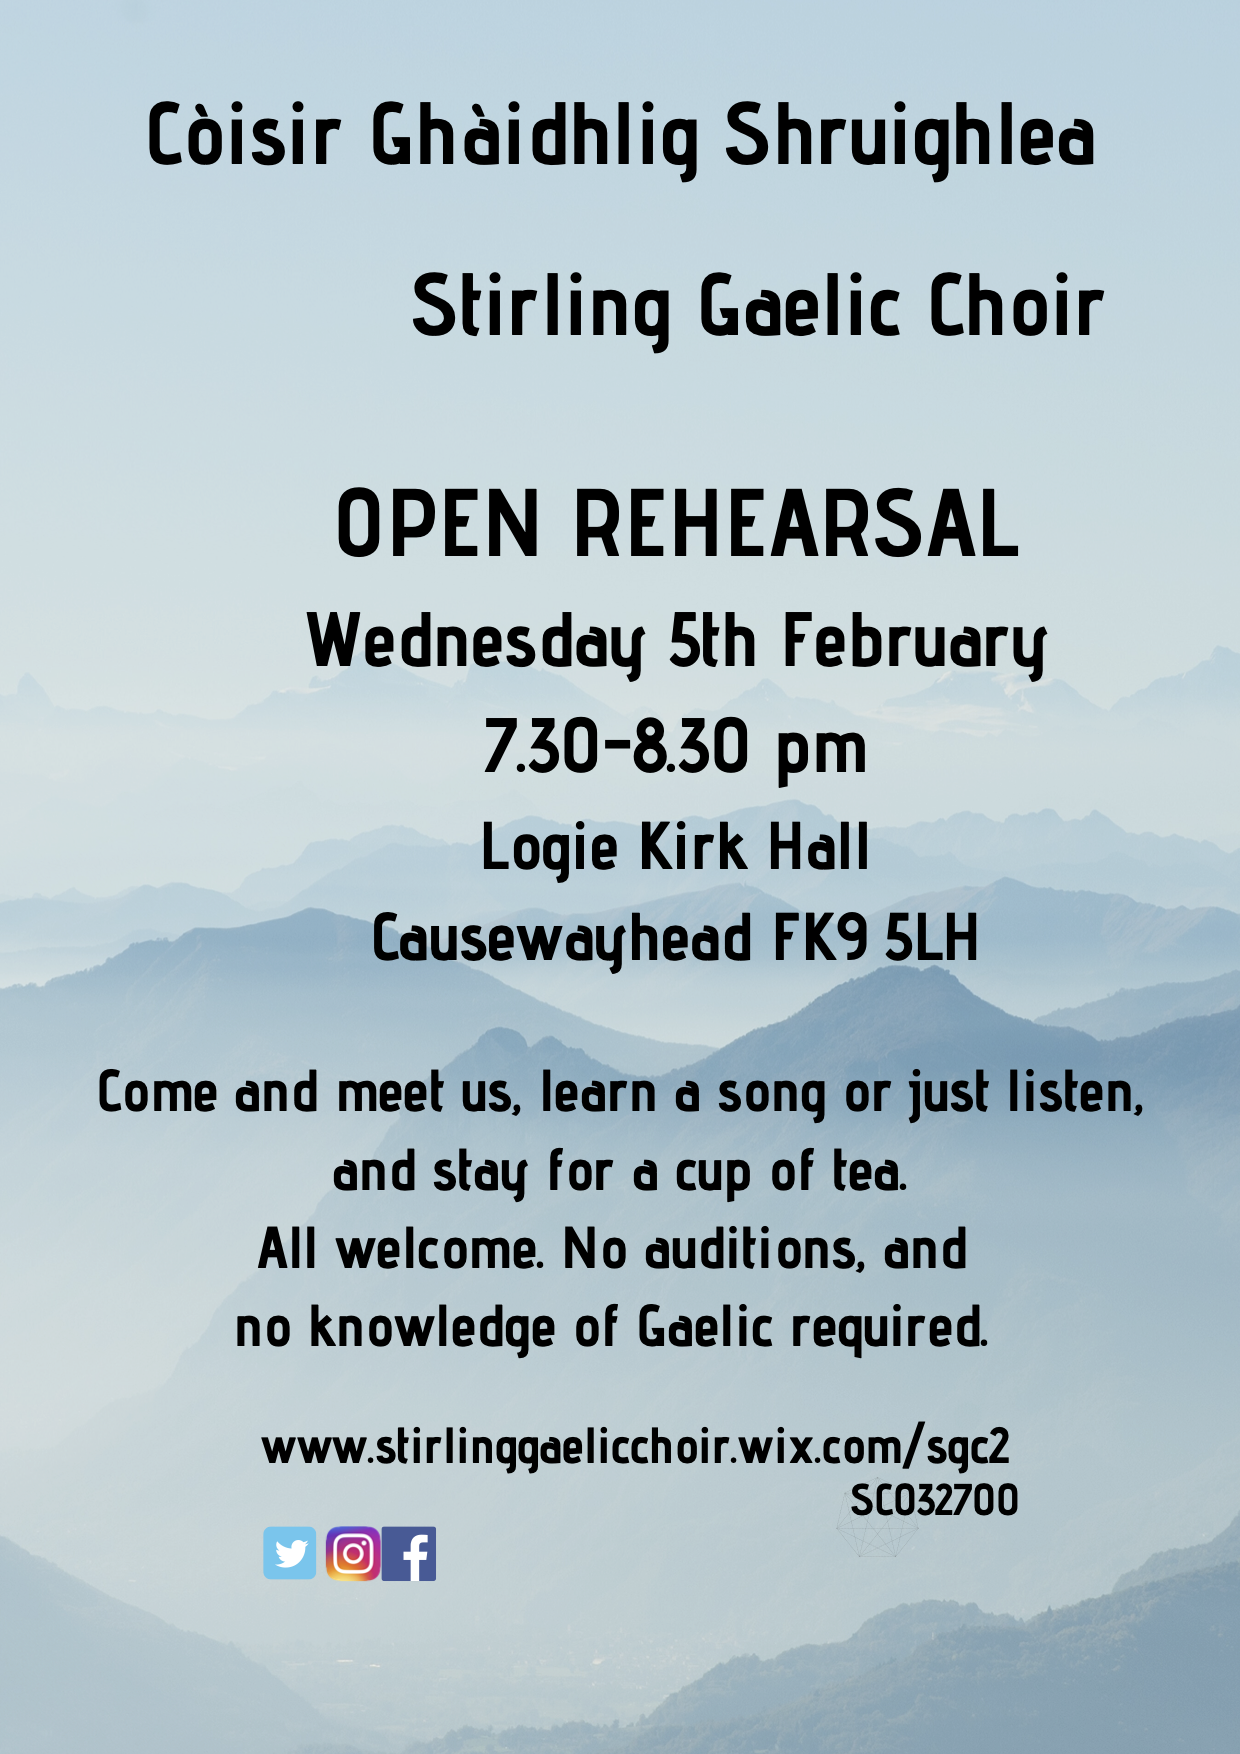 Stirling Gaelic Choir Open Rehearsal